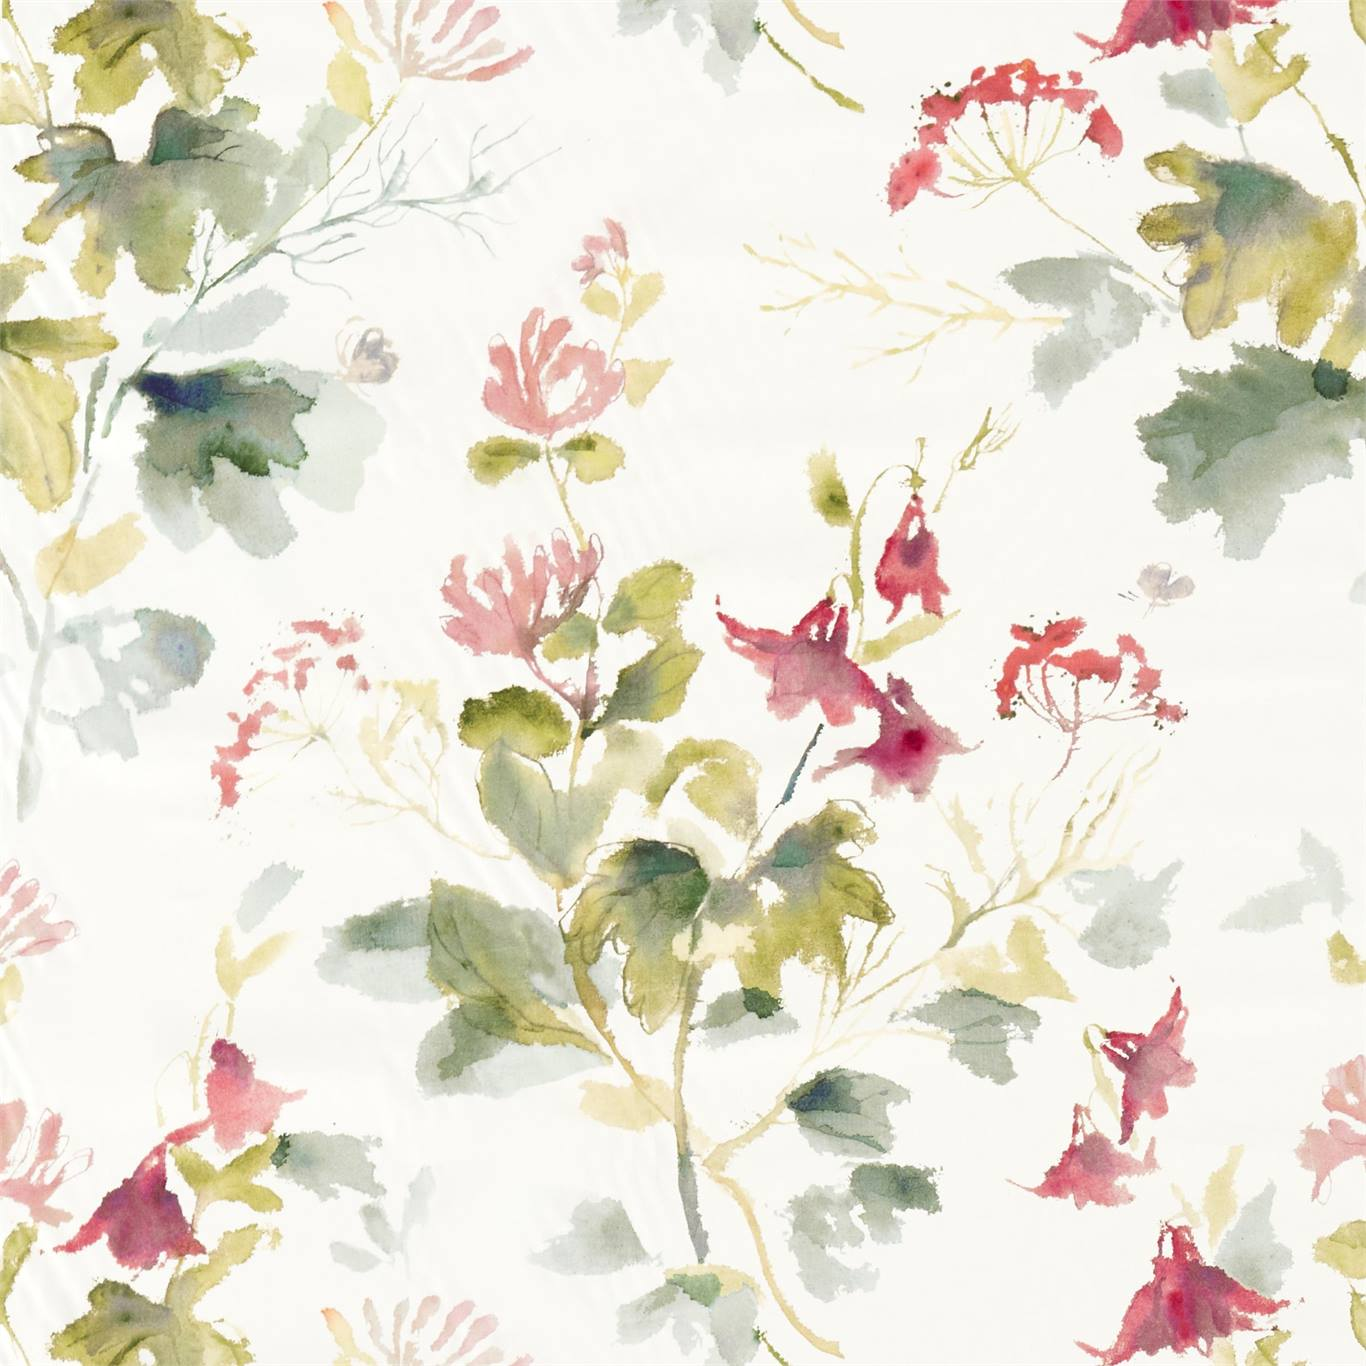 DNTF226740 Collection - National Trust Fabric